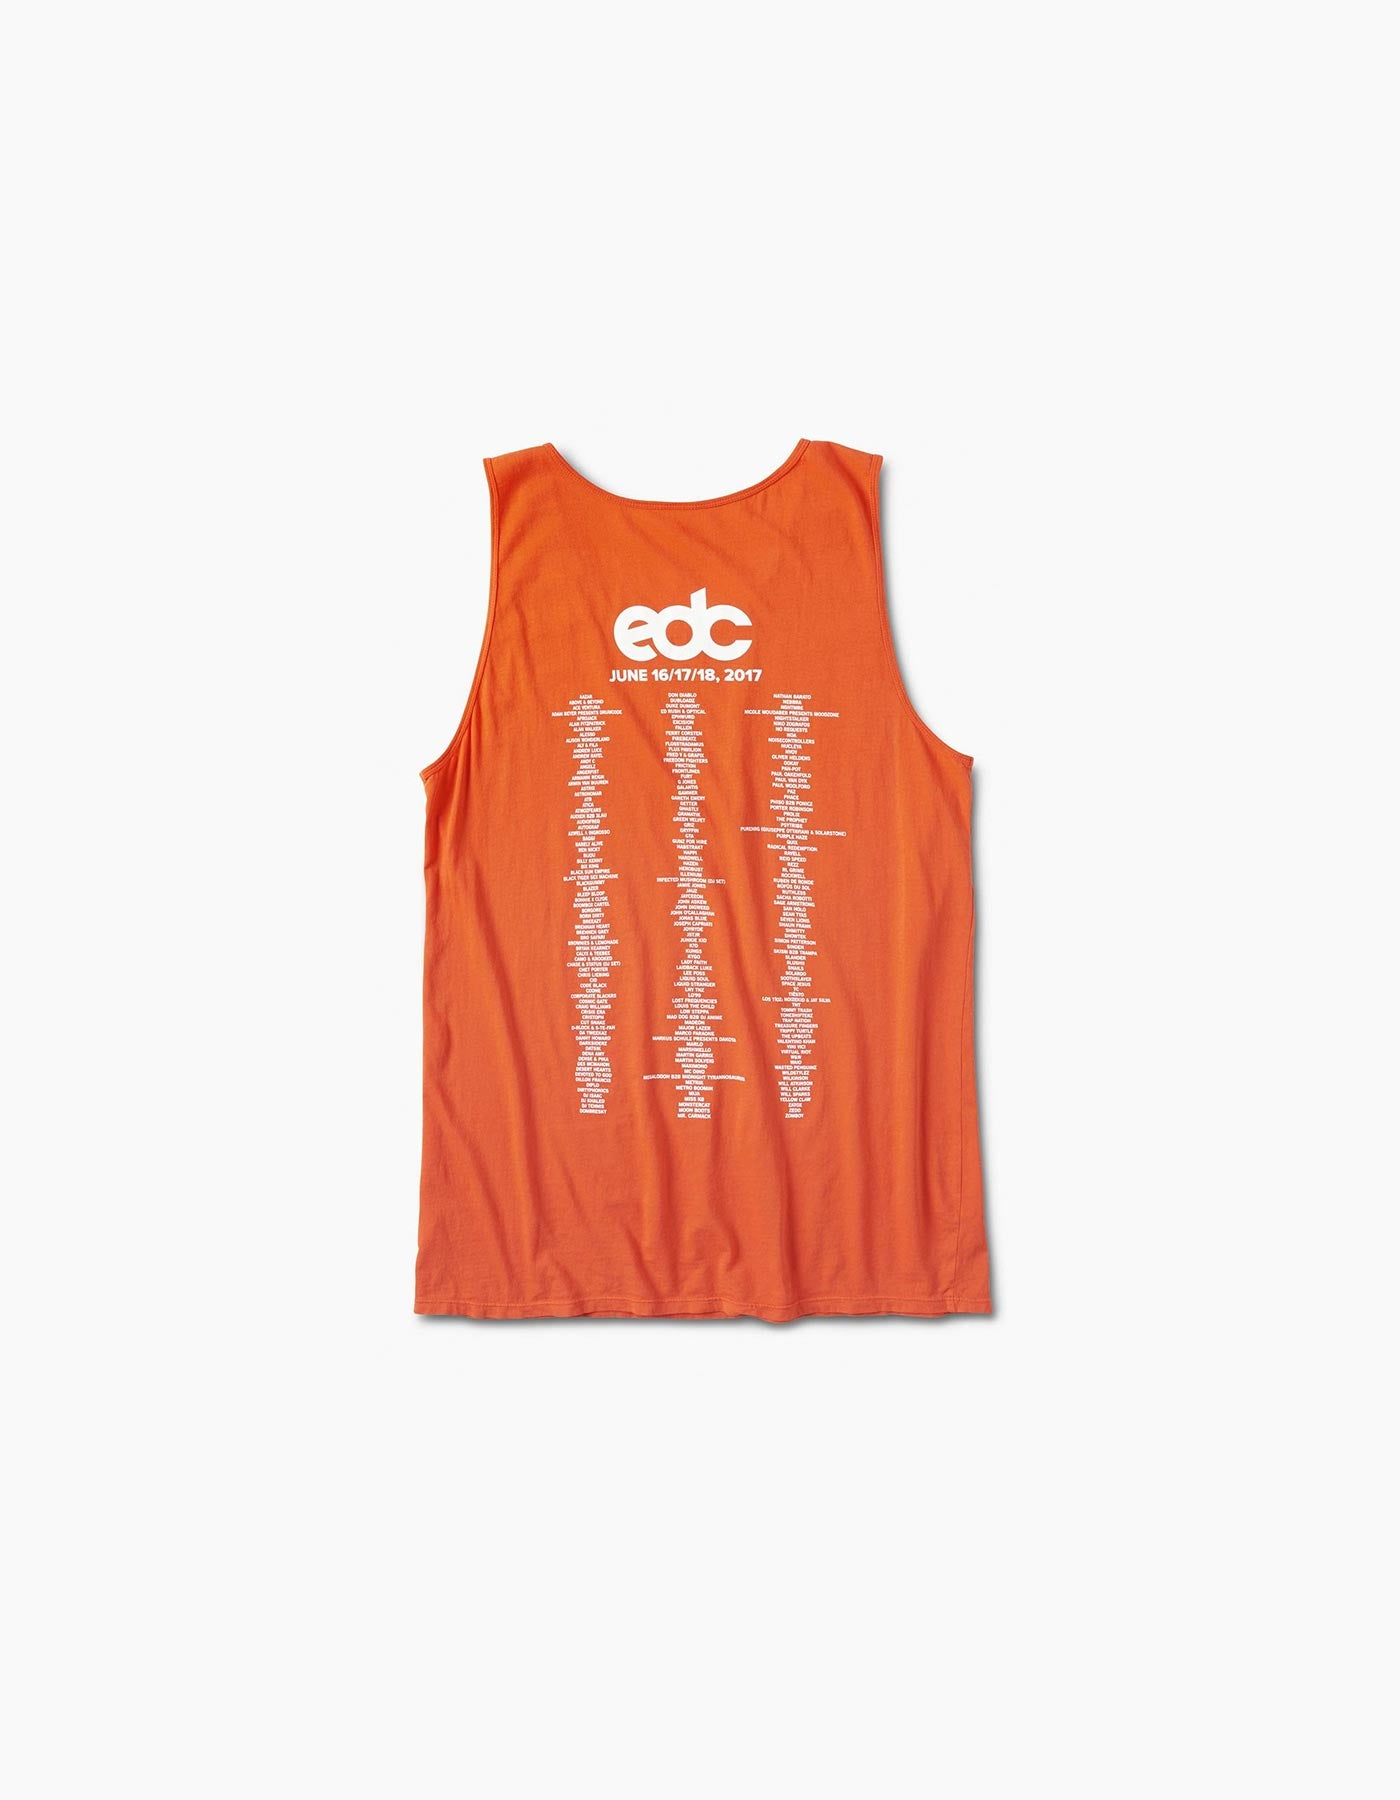 EDC Vegas - 2017 Horizon Line Up Tank